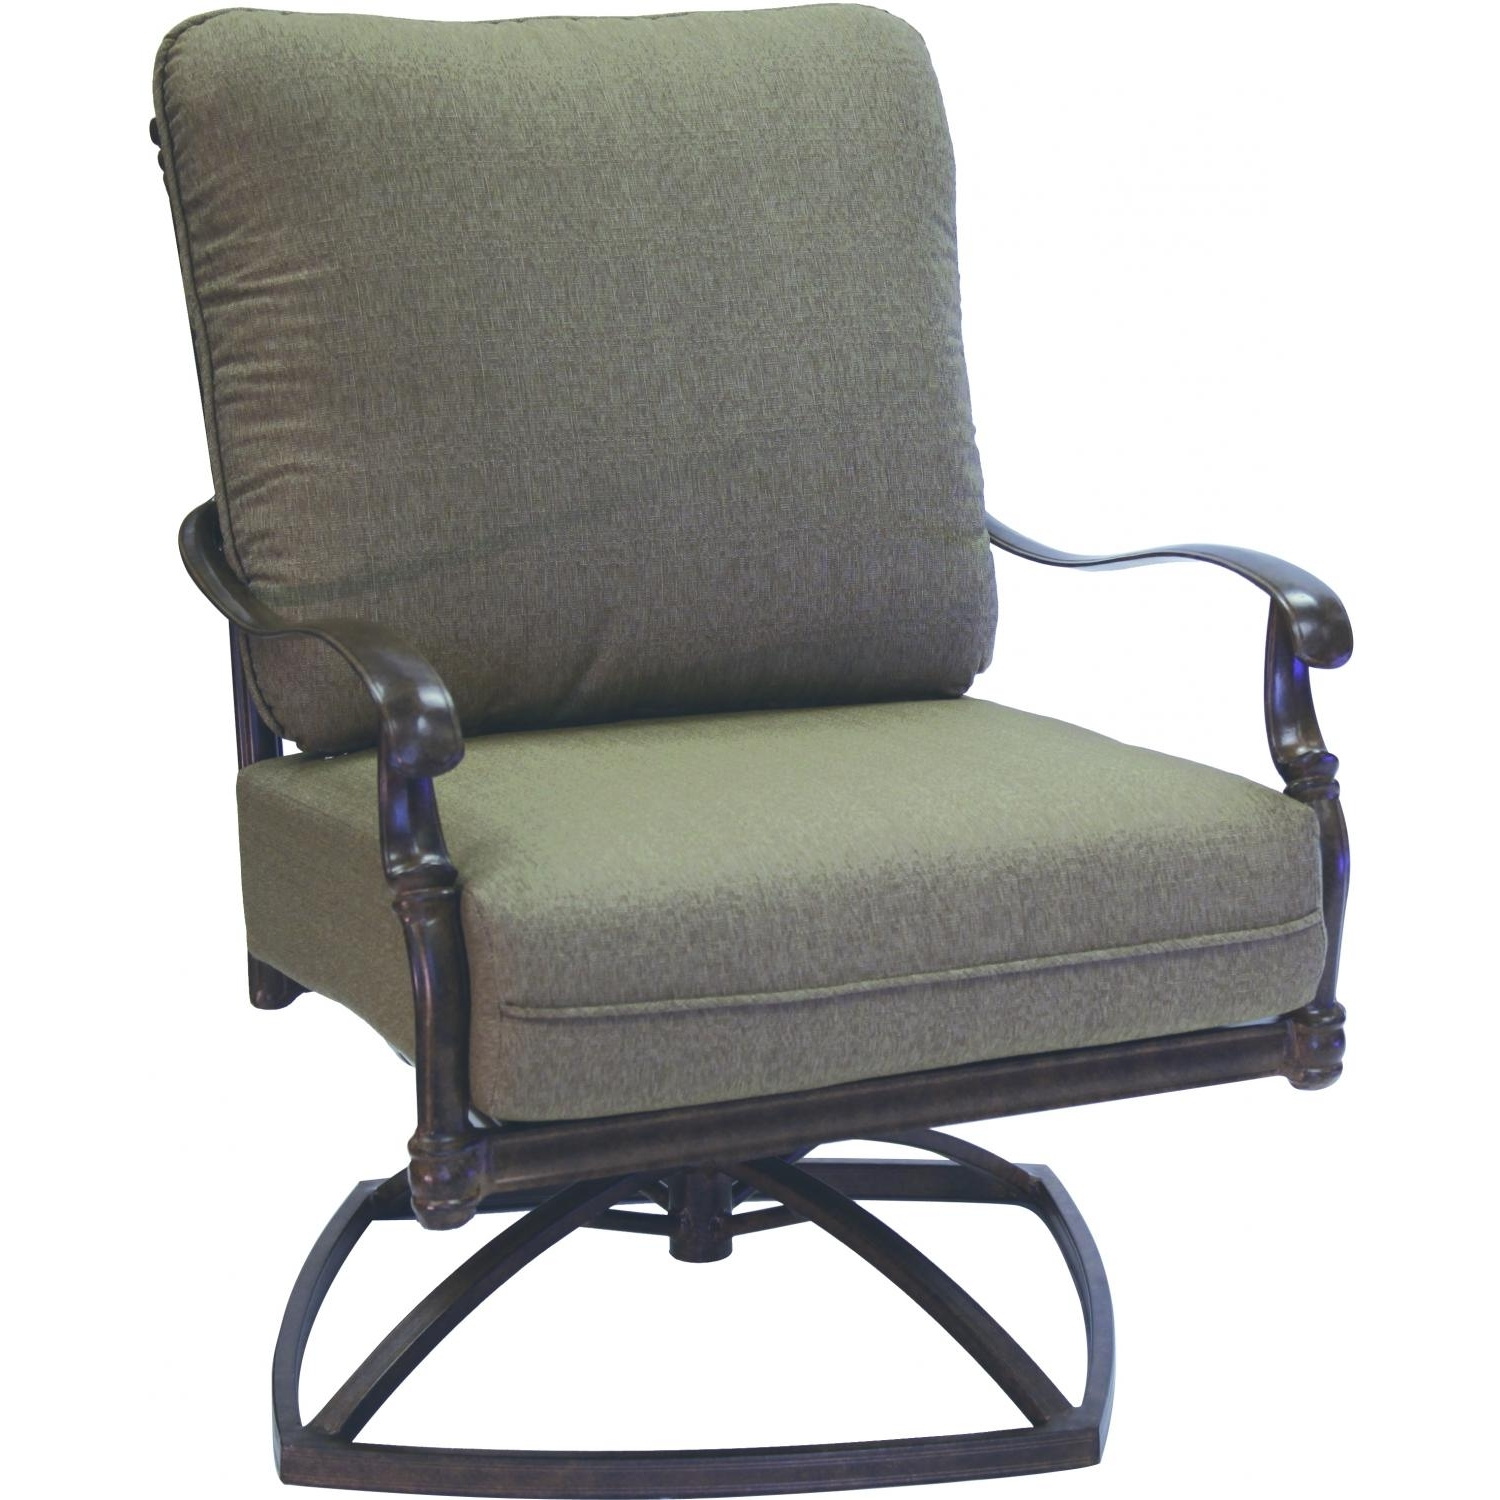 Single Outdoor Chairs Stackable Sling Back Patio Chairs Regarding Preferred Stackable Patio Rocking Chairs (View 17 of 20)